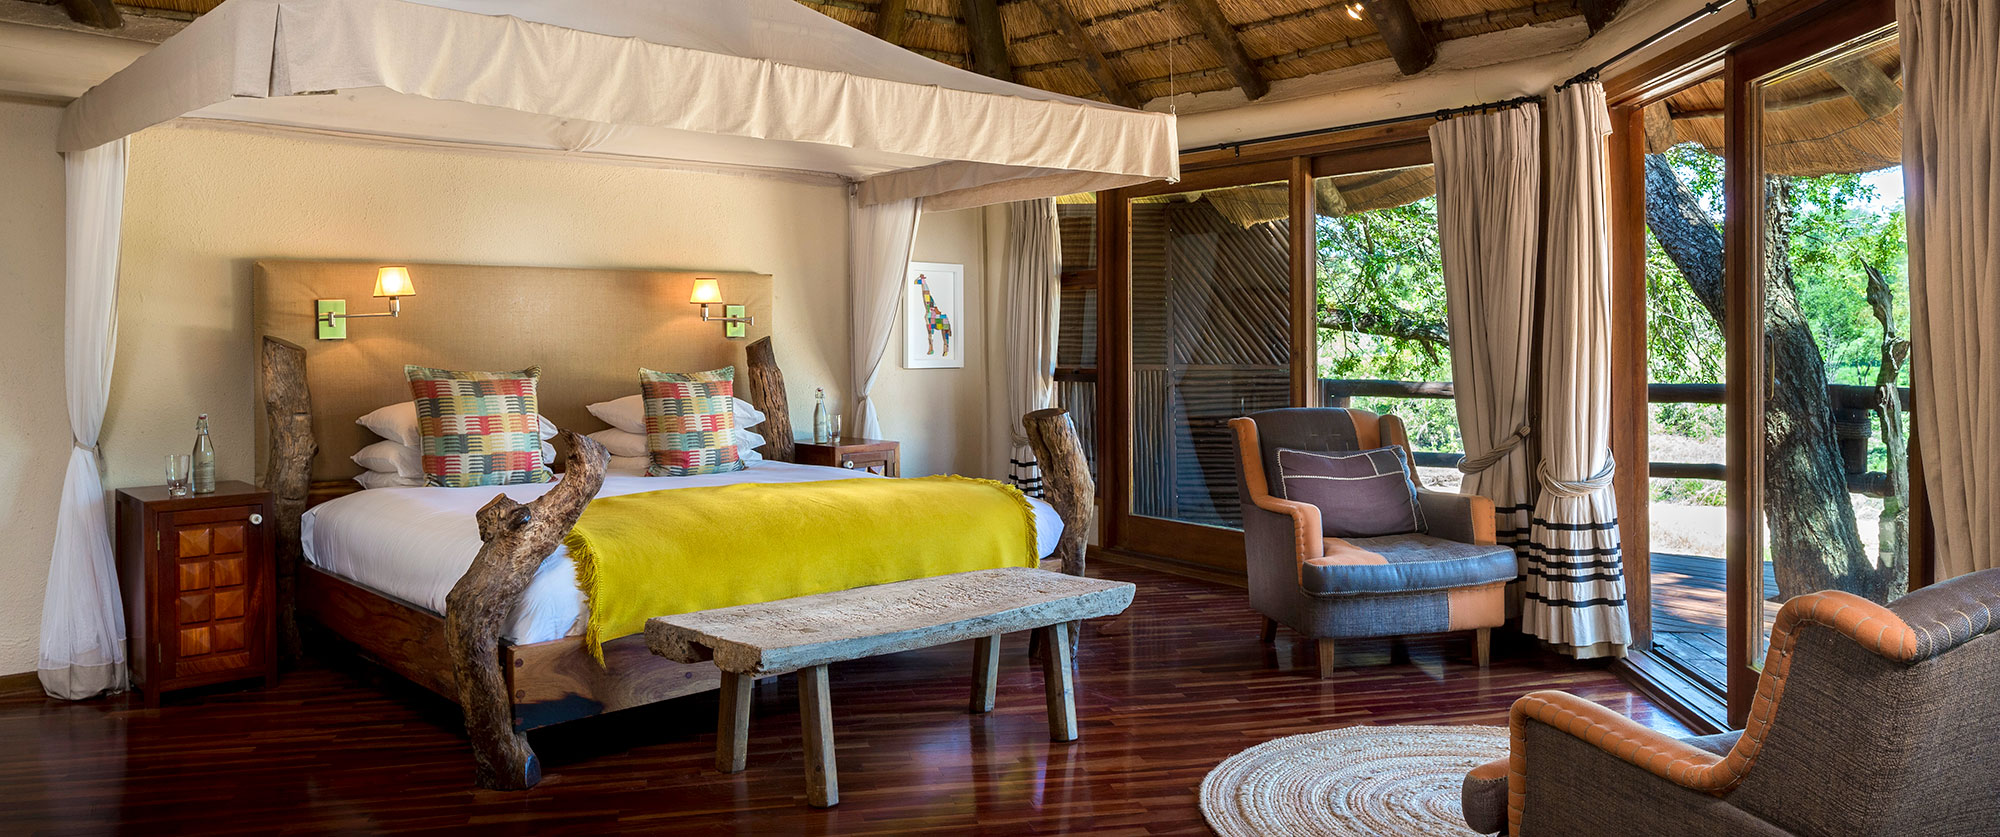 South Africa Safari and Wine Vacation - Ulusaba Safari Lodge